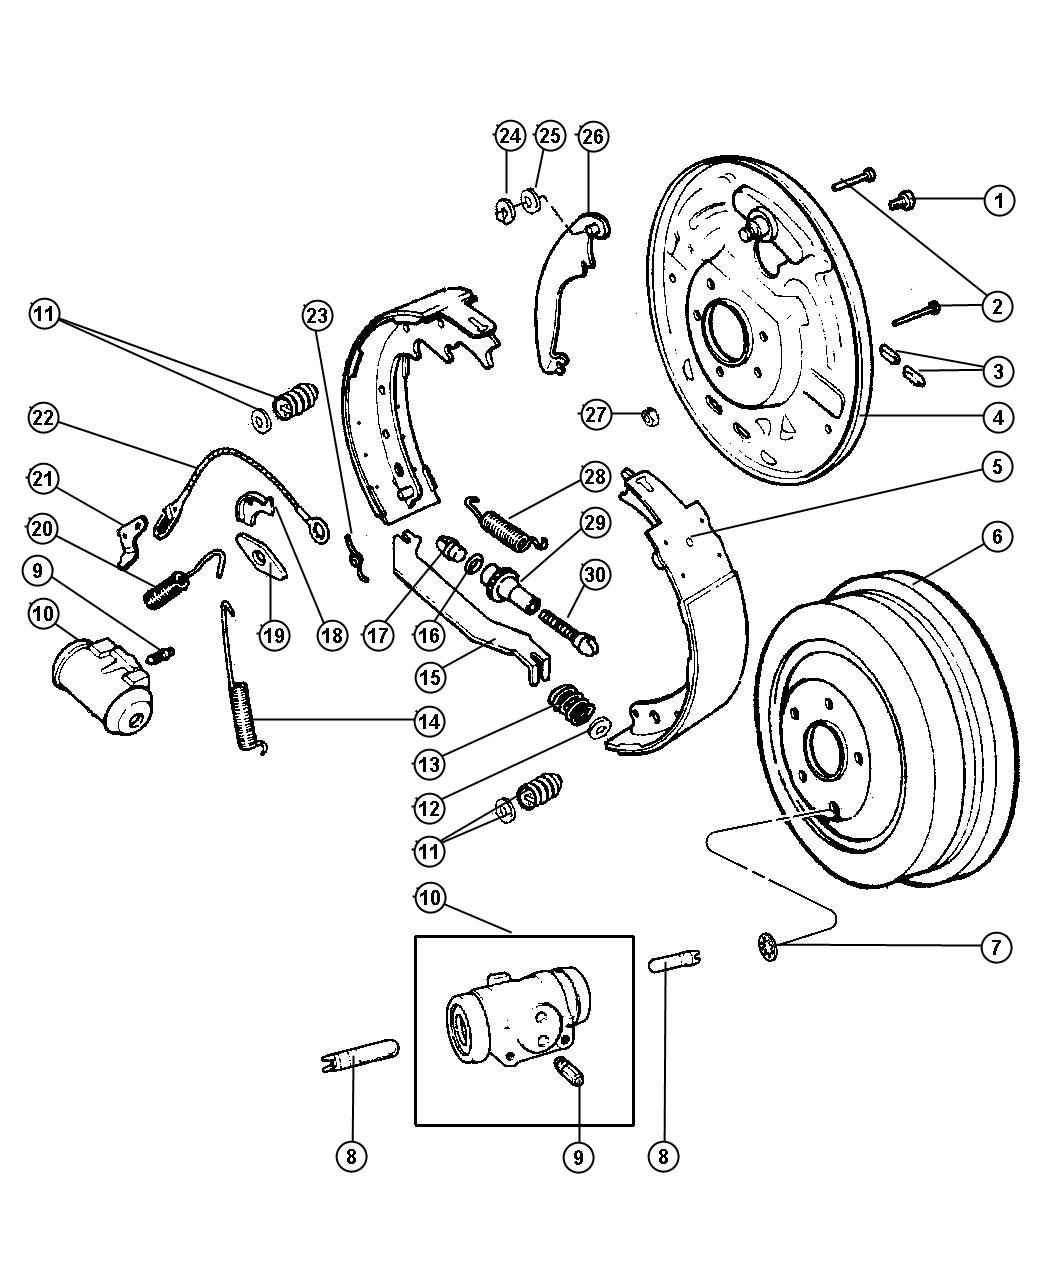 dodge manual transmission diagram within dodge wiring and engine